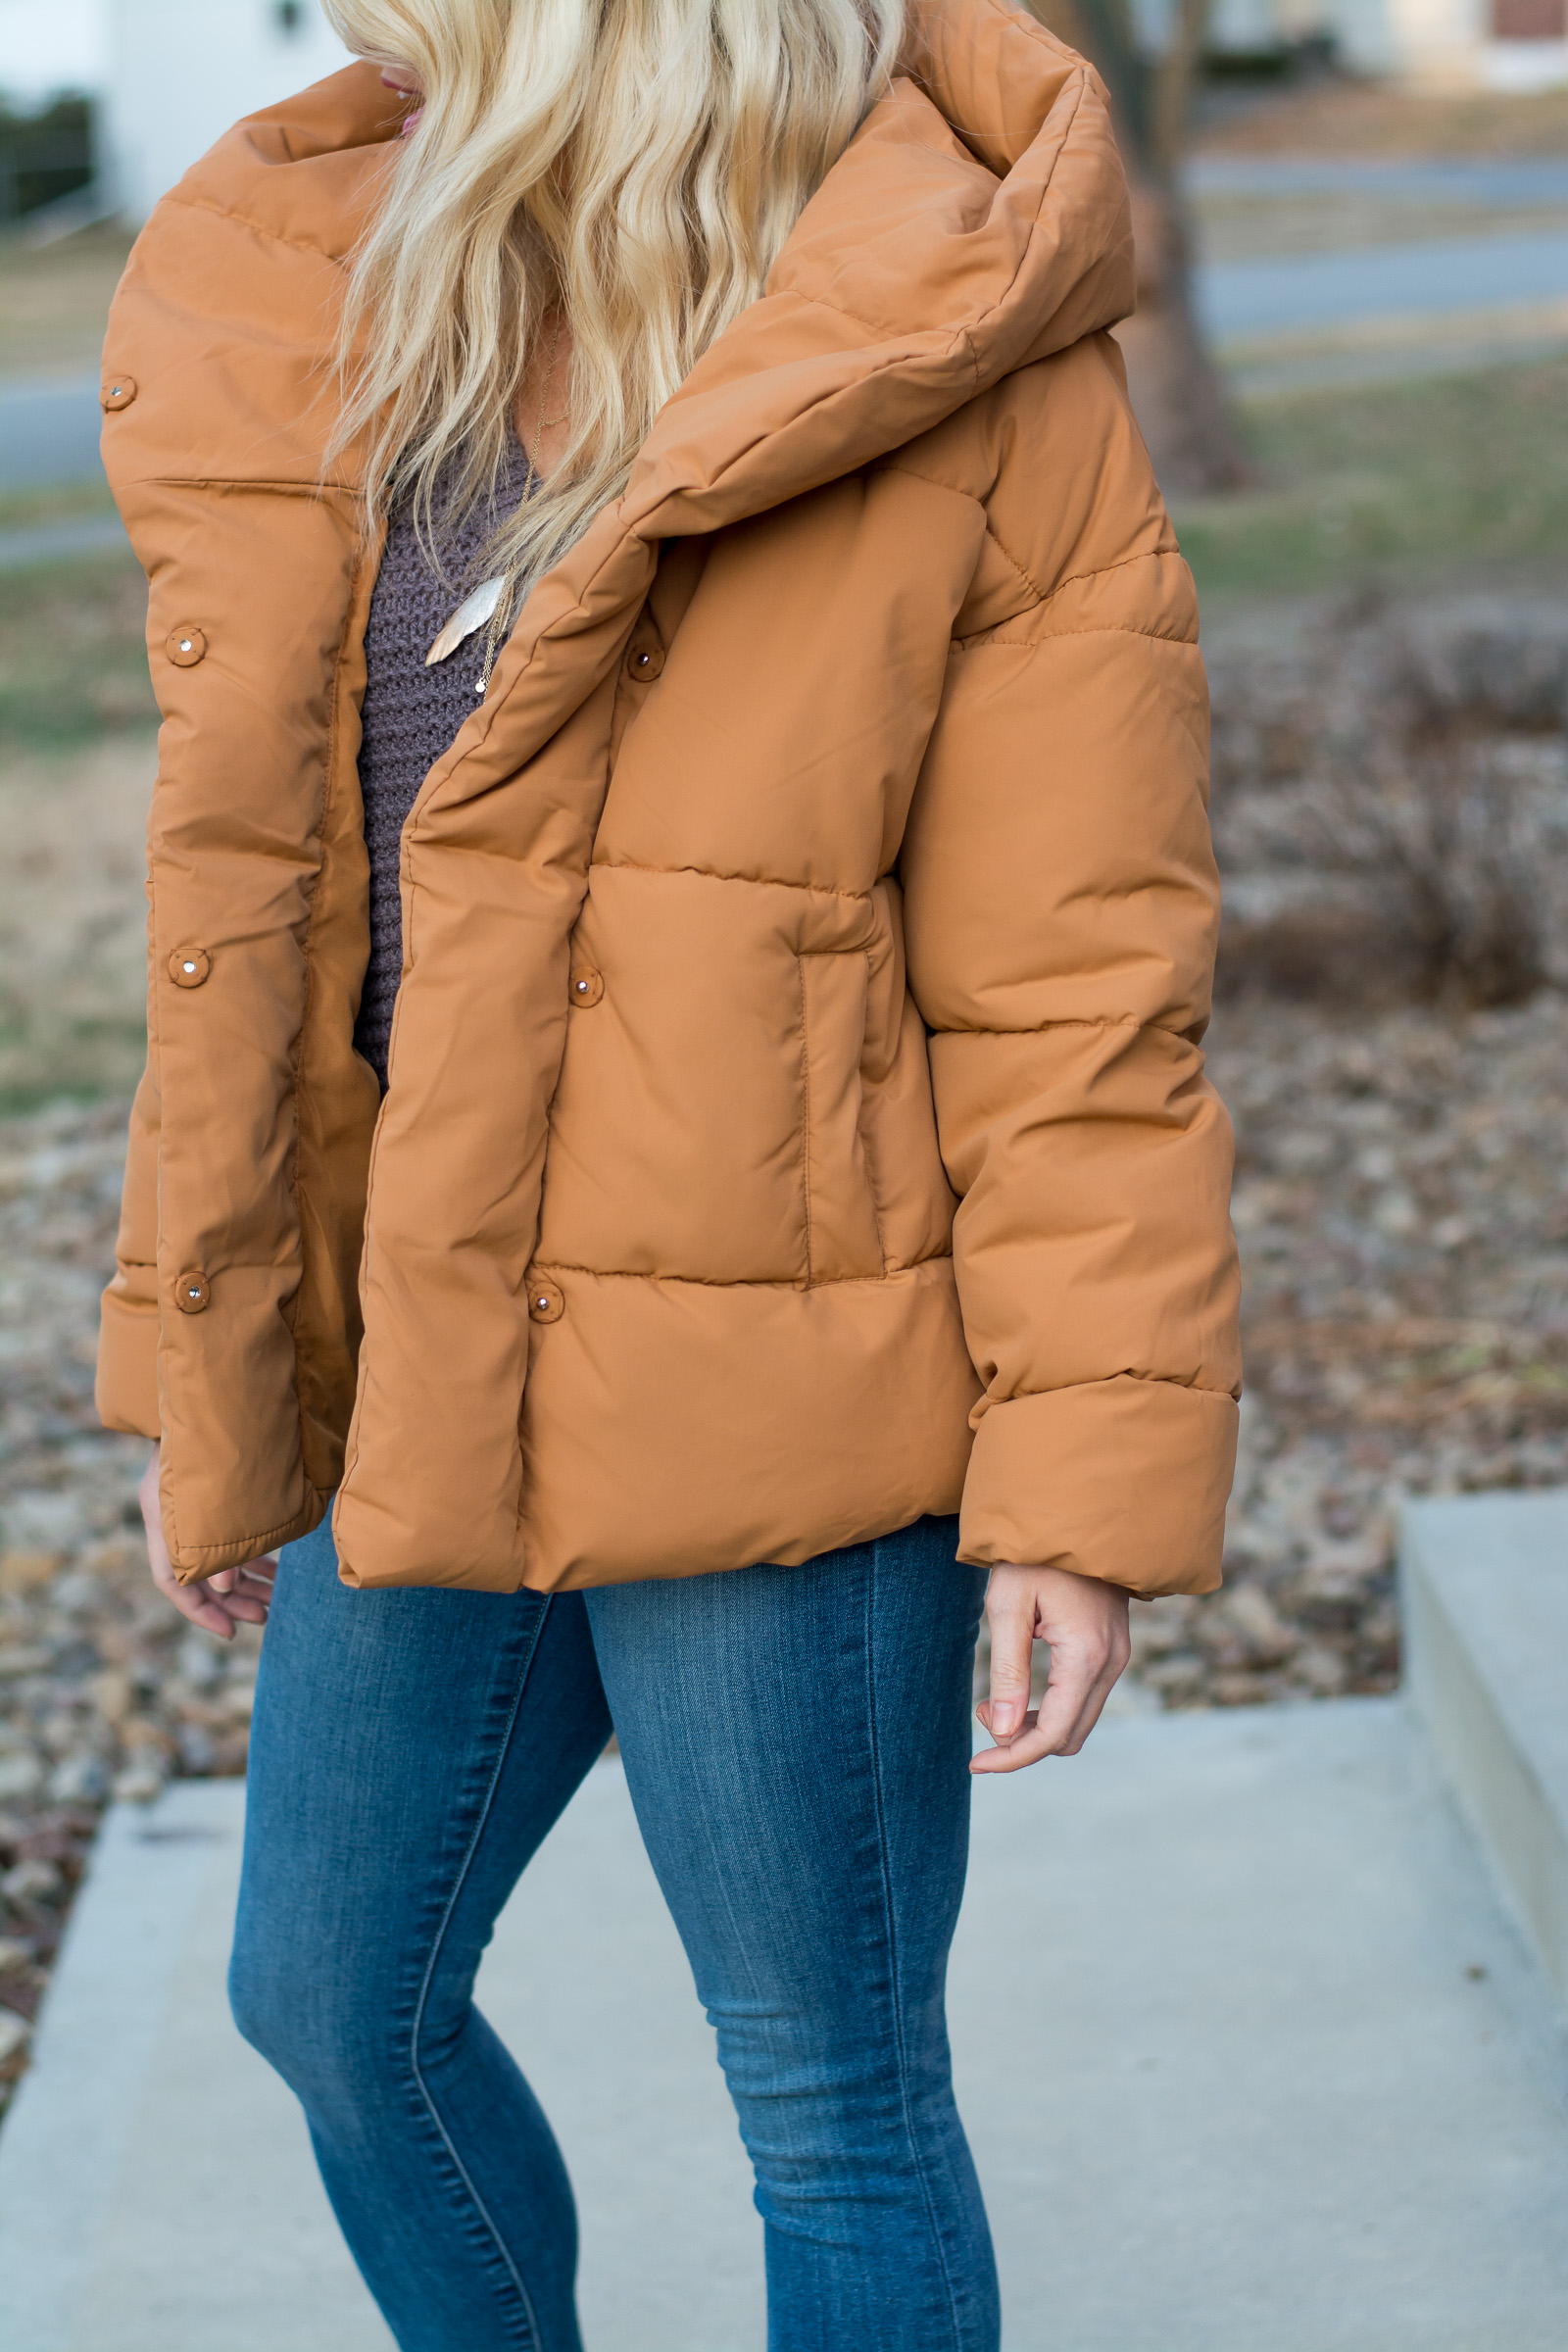 Styling a Puffer Jacket. | Ashley from Le Stylo Rouge